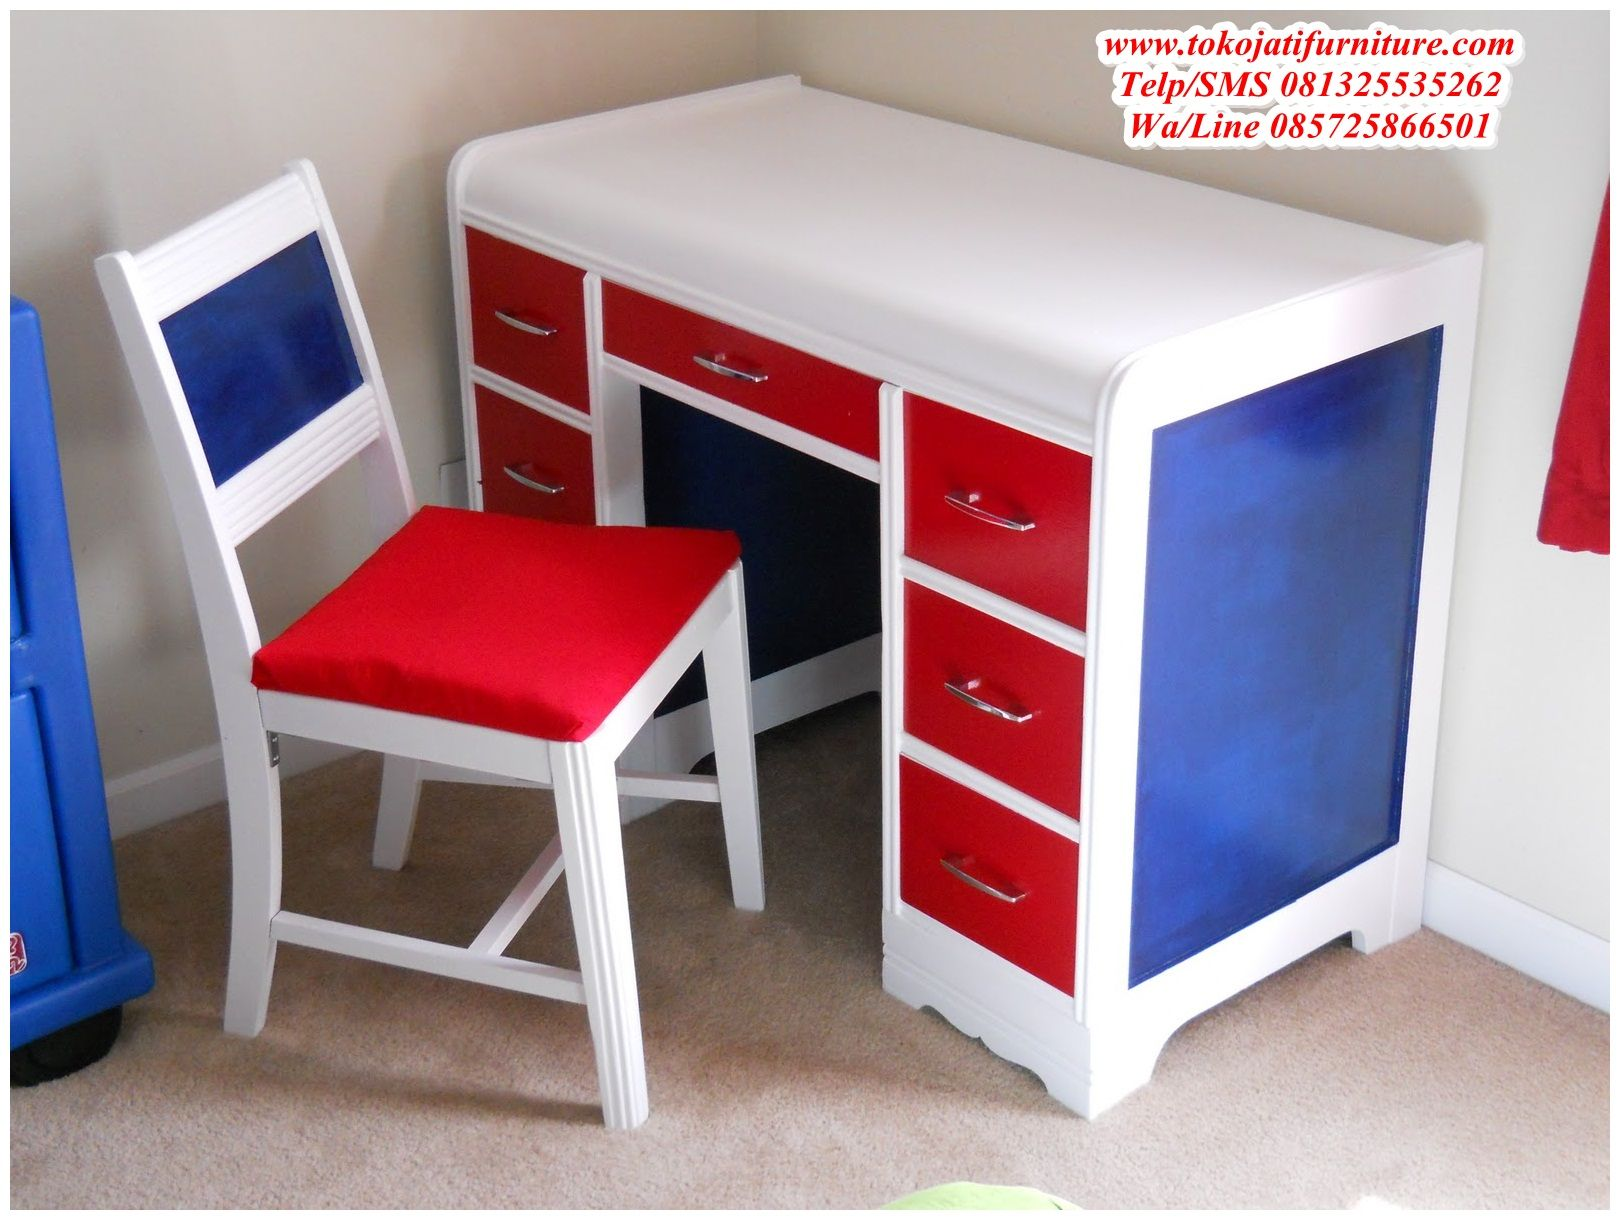 Explore Boys Desk, Kid Desk And More